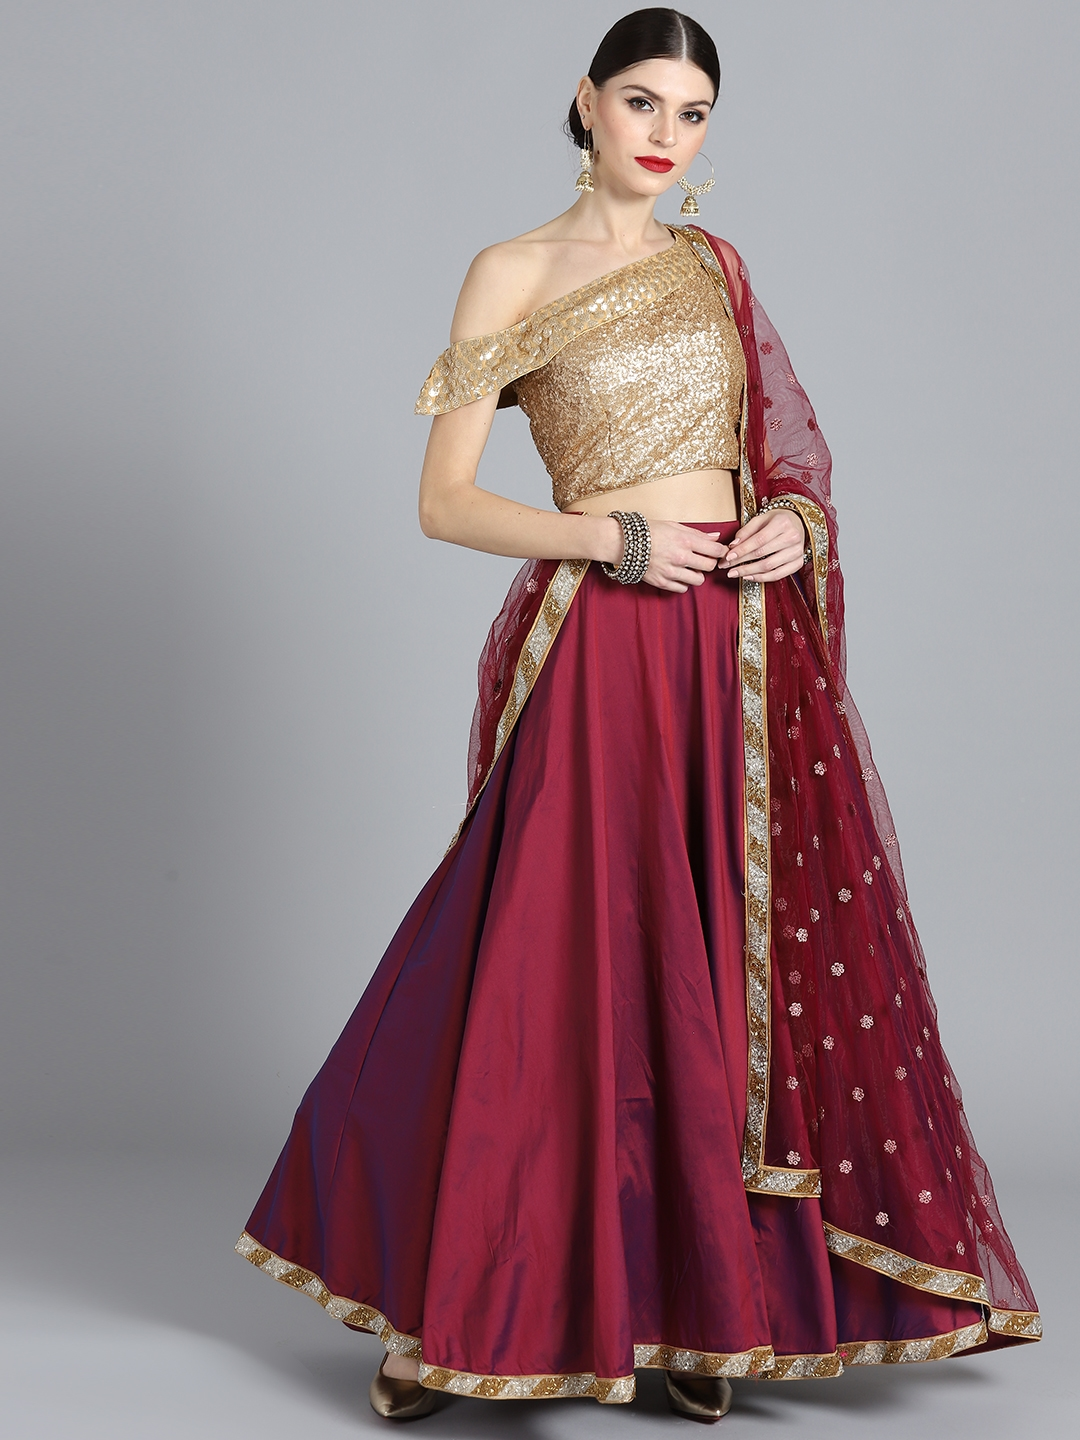 a69ec8c74 Bollywood Vogue Maroon   Golden Sequinned Made to Measure Lehenga Choli